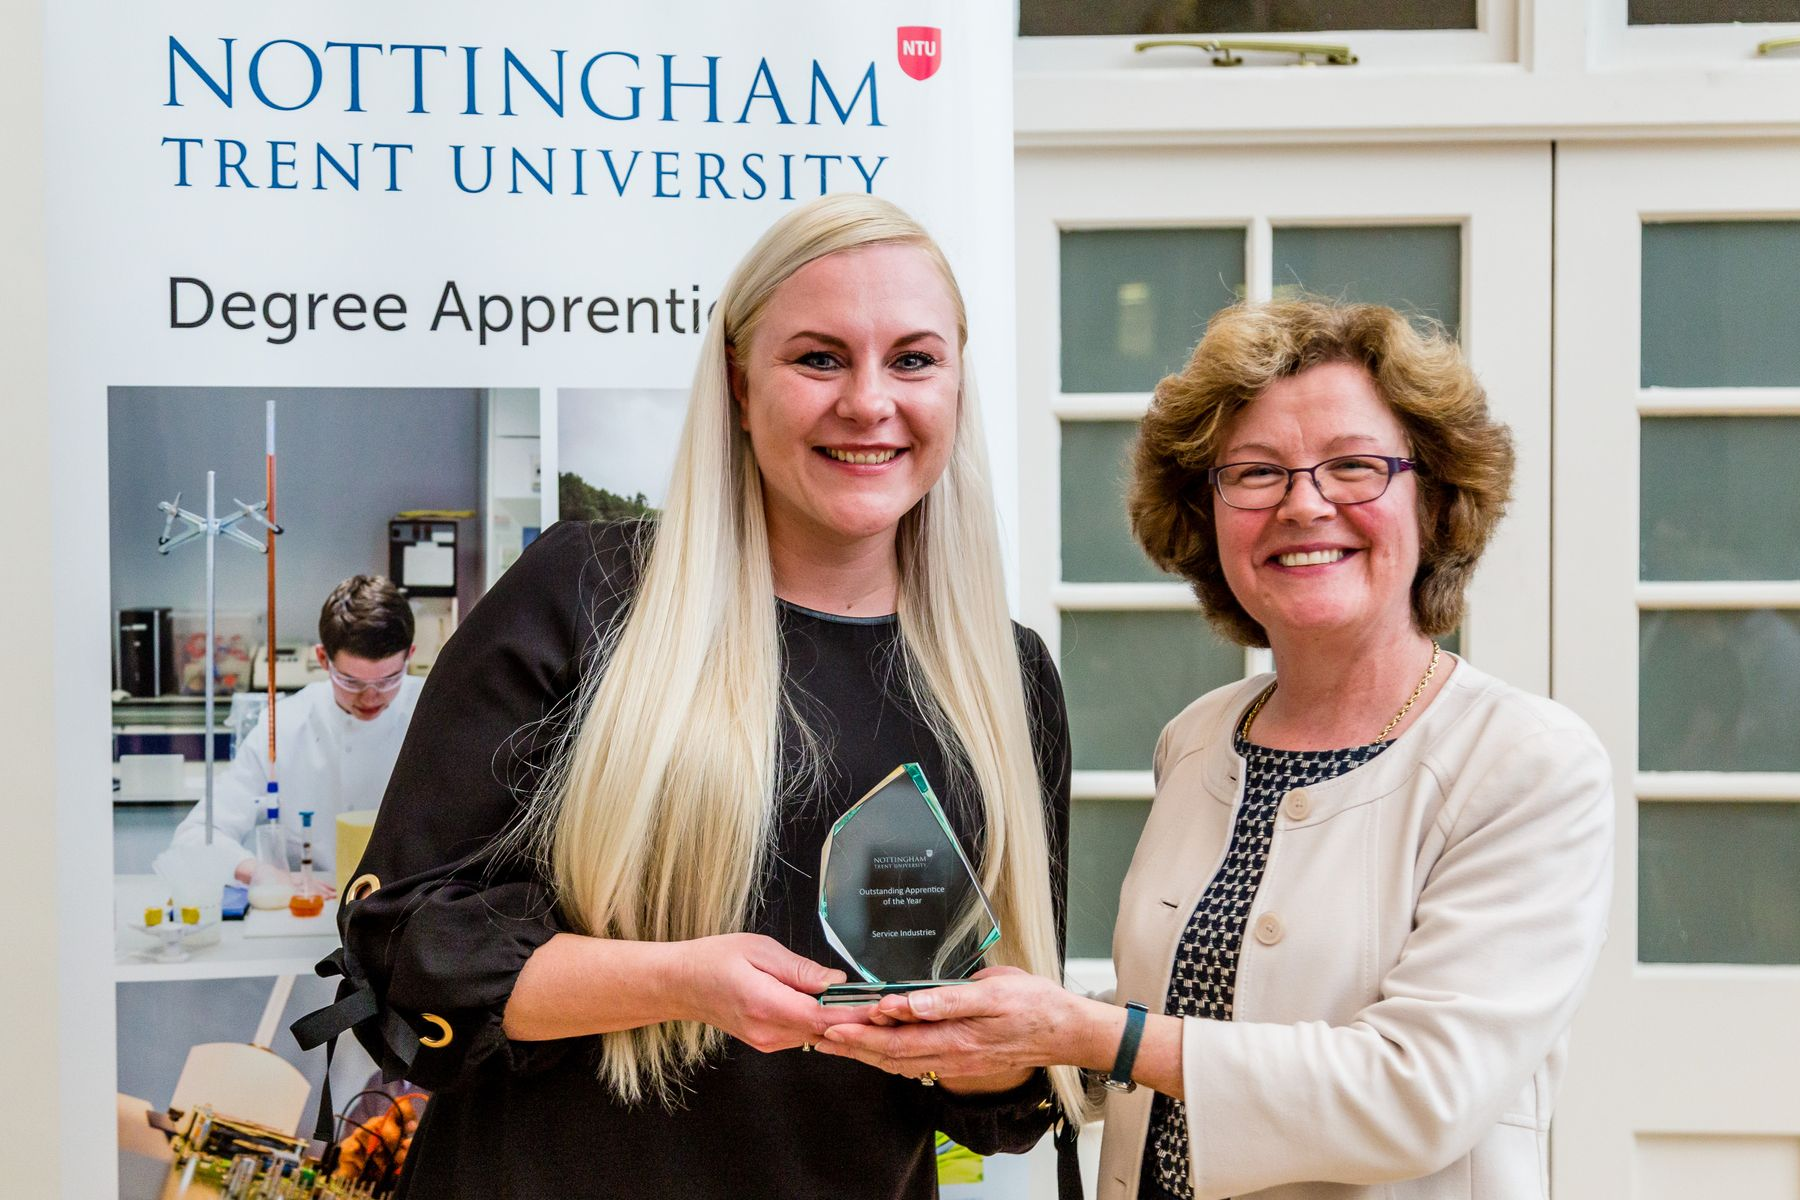 Apprentice collection award for outstanding apprentice of the year within the service industry